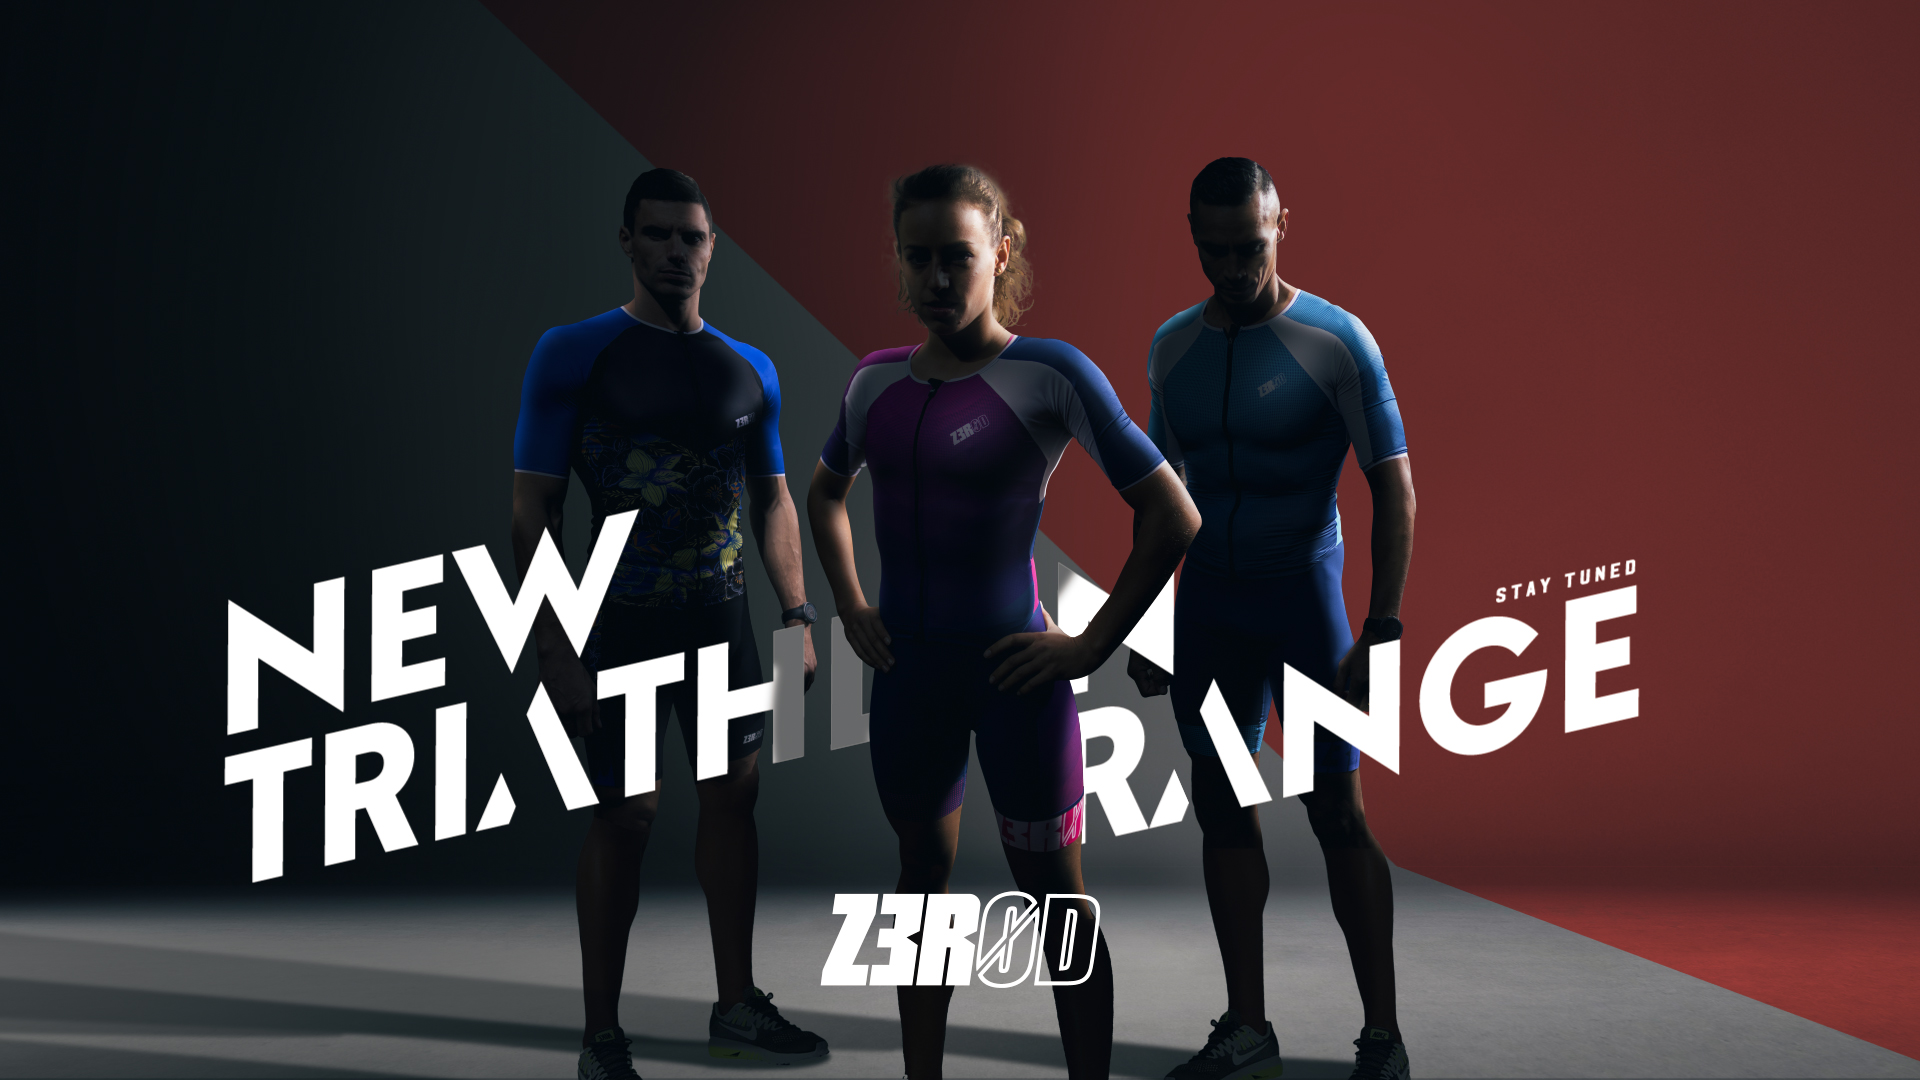 New Triathlon Range coming soon!